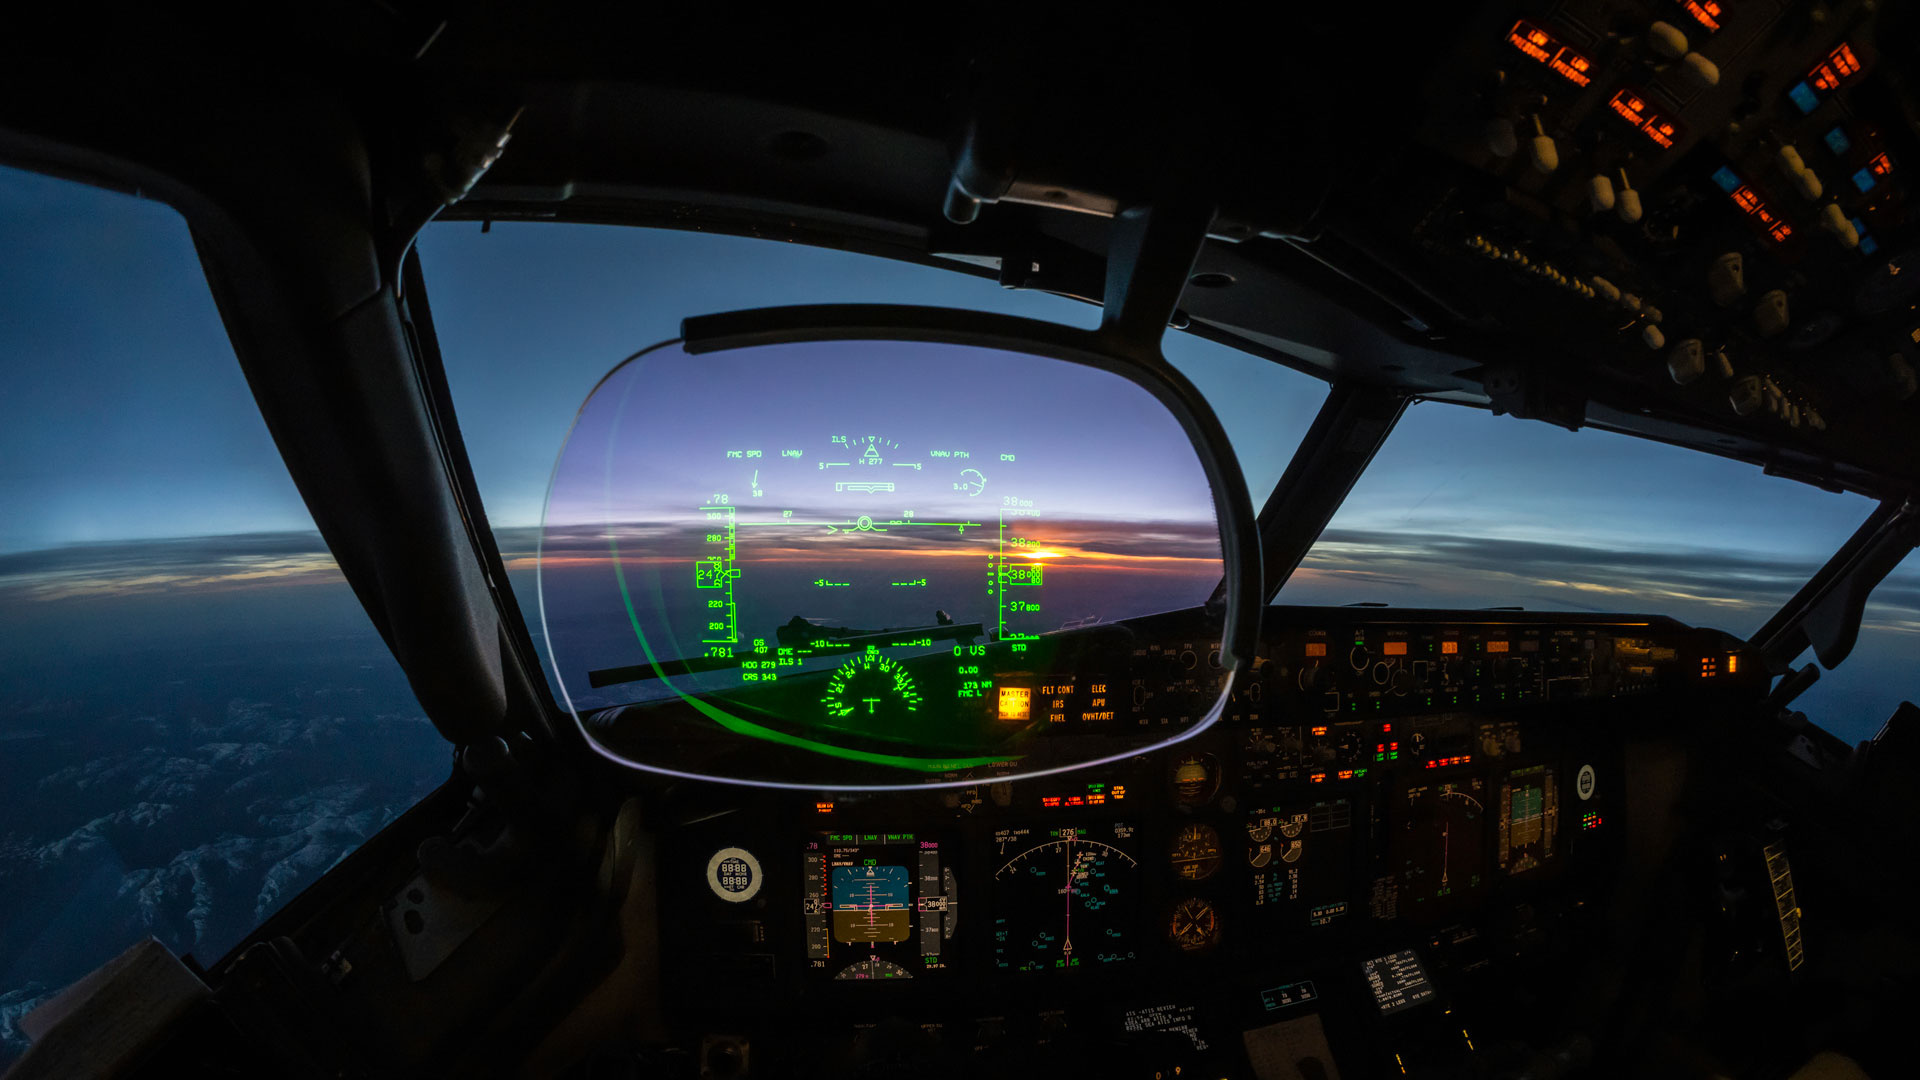 Heads-up display in the flight deck of an aircraft.